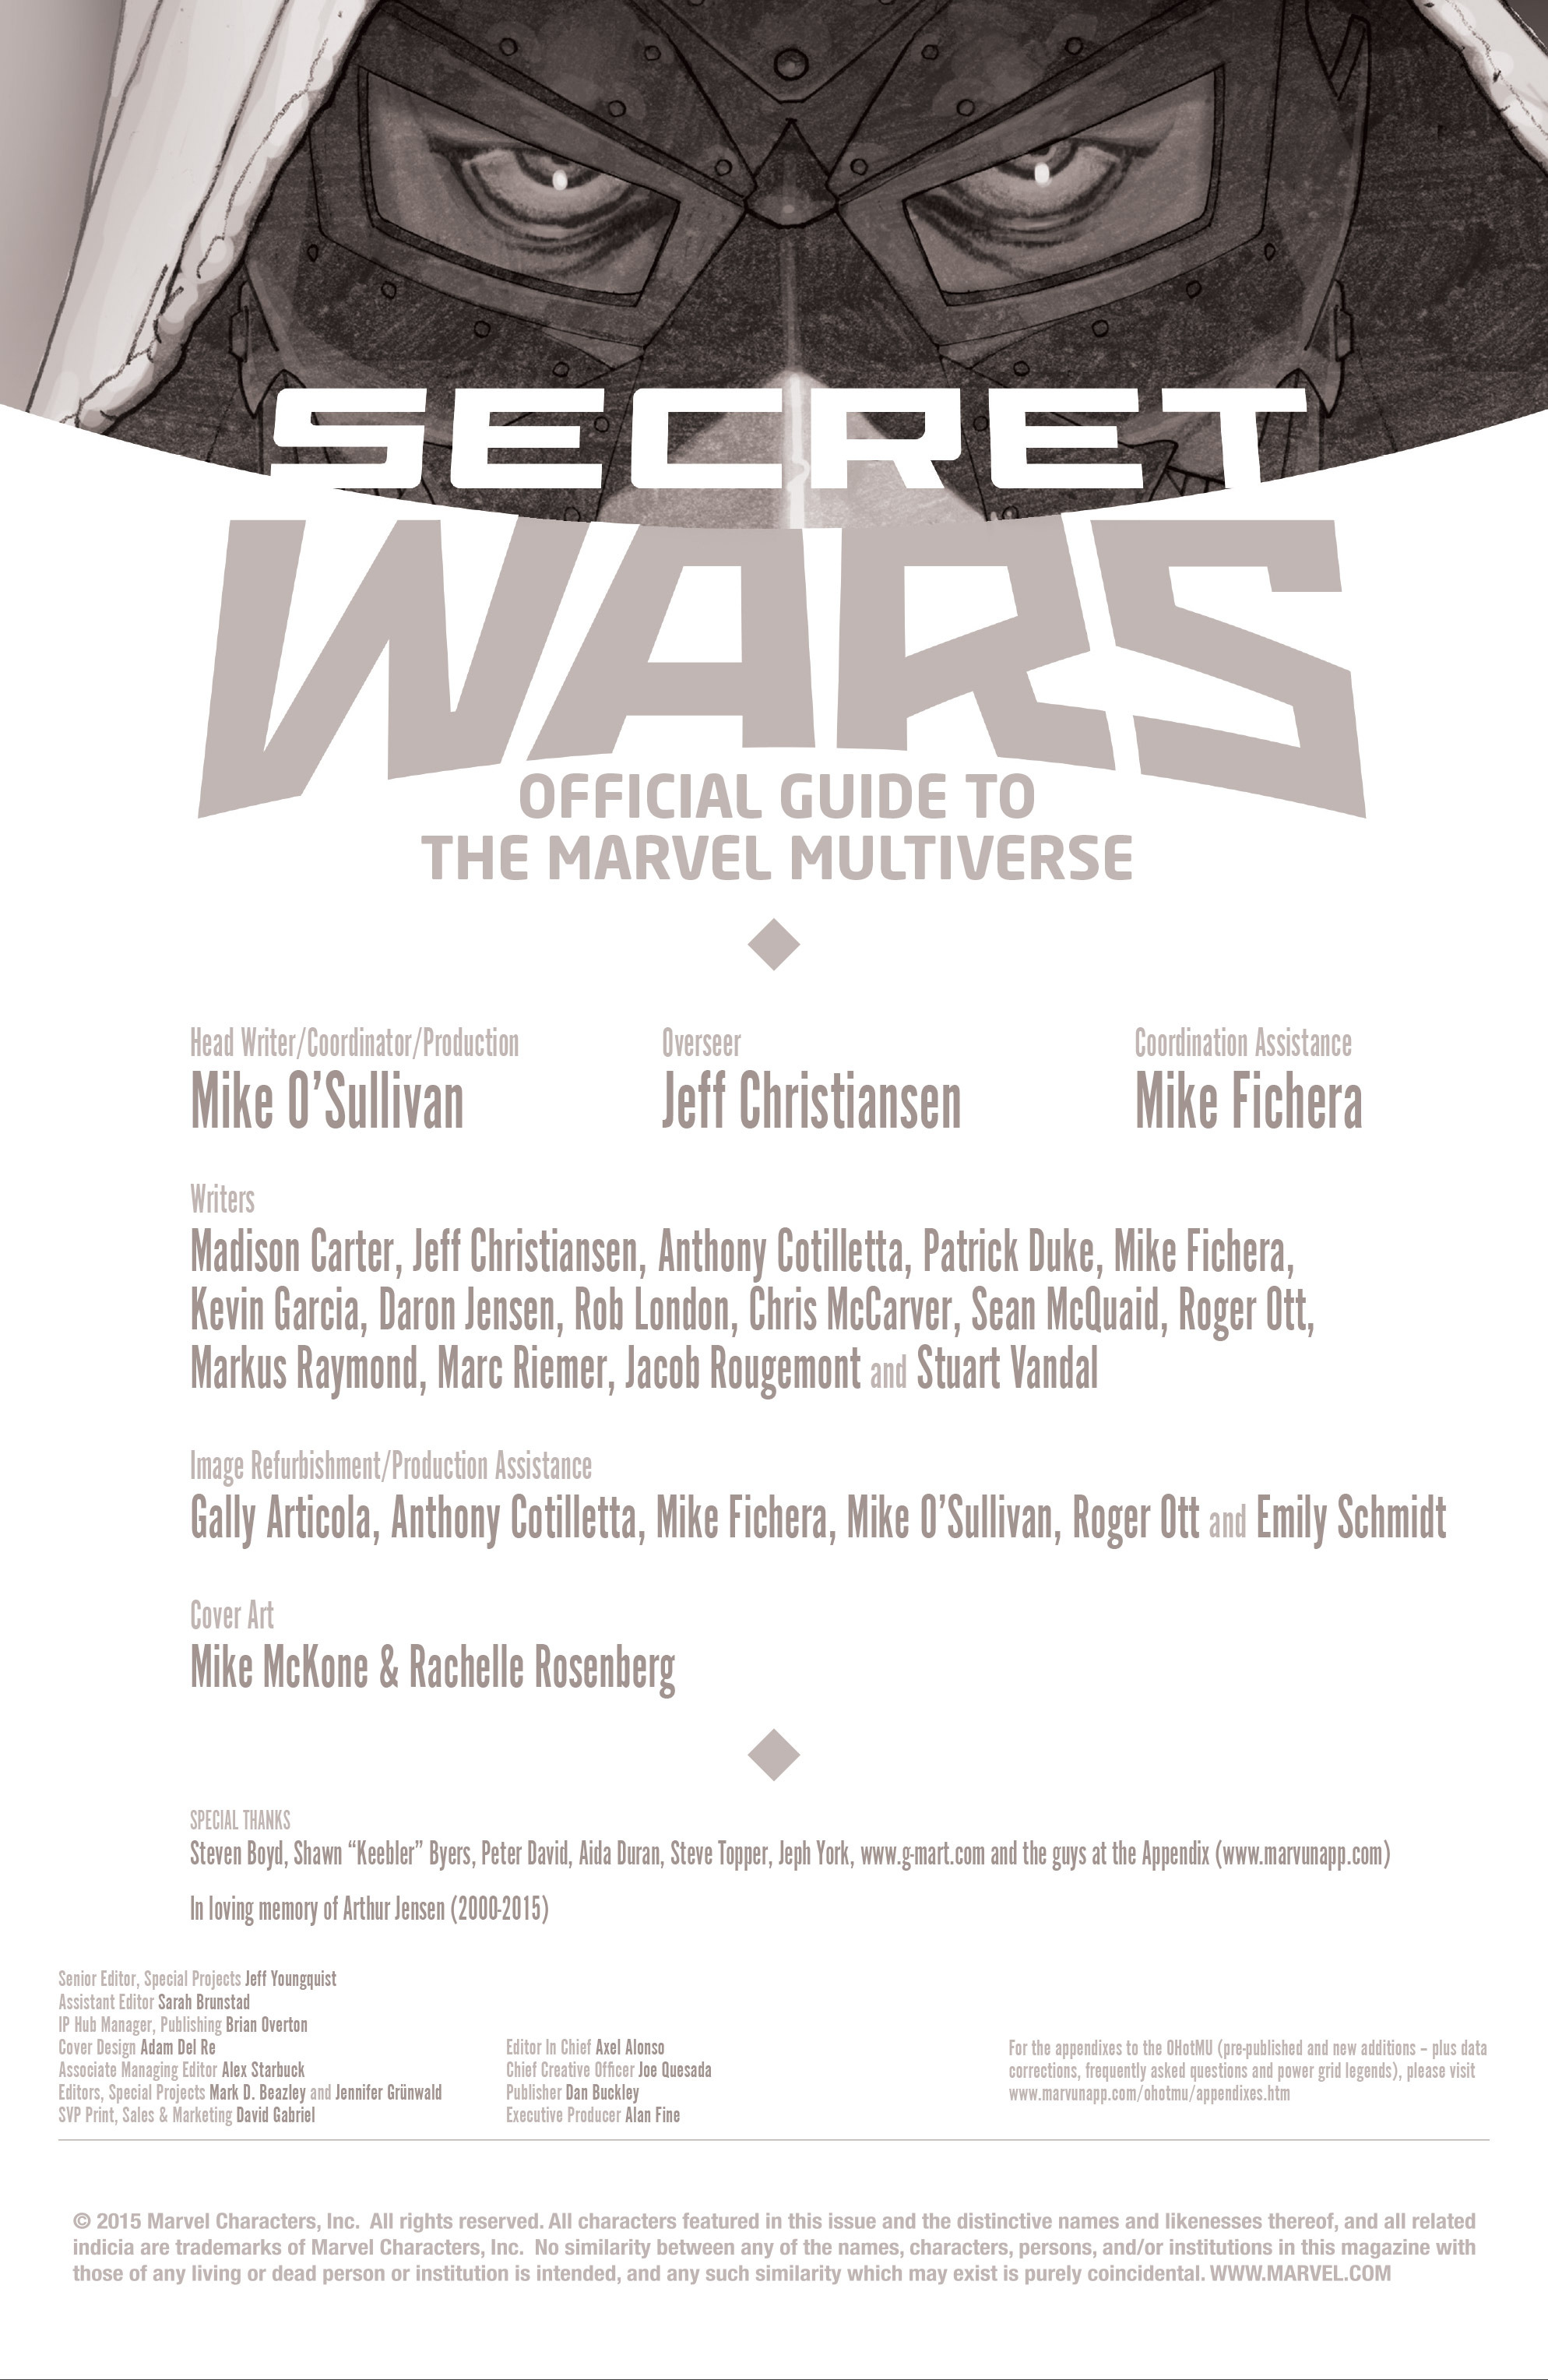 Read online Secret Wars: Official Guide to the Marvel Multiverse comic -  Issue # Full - 2